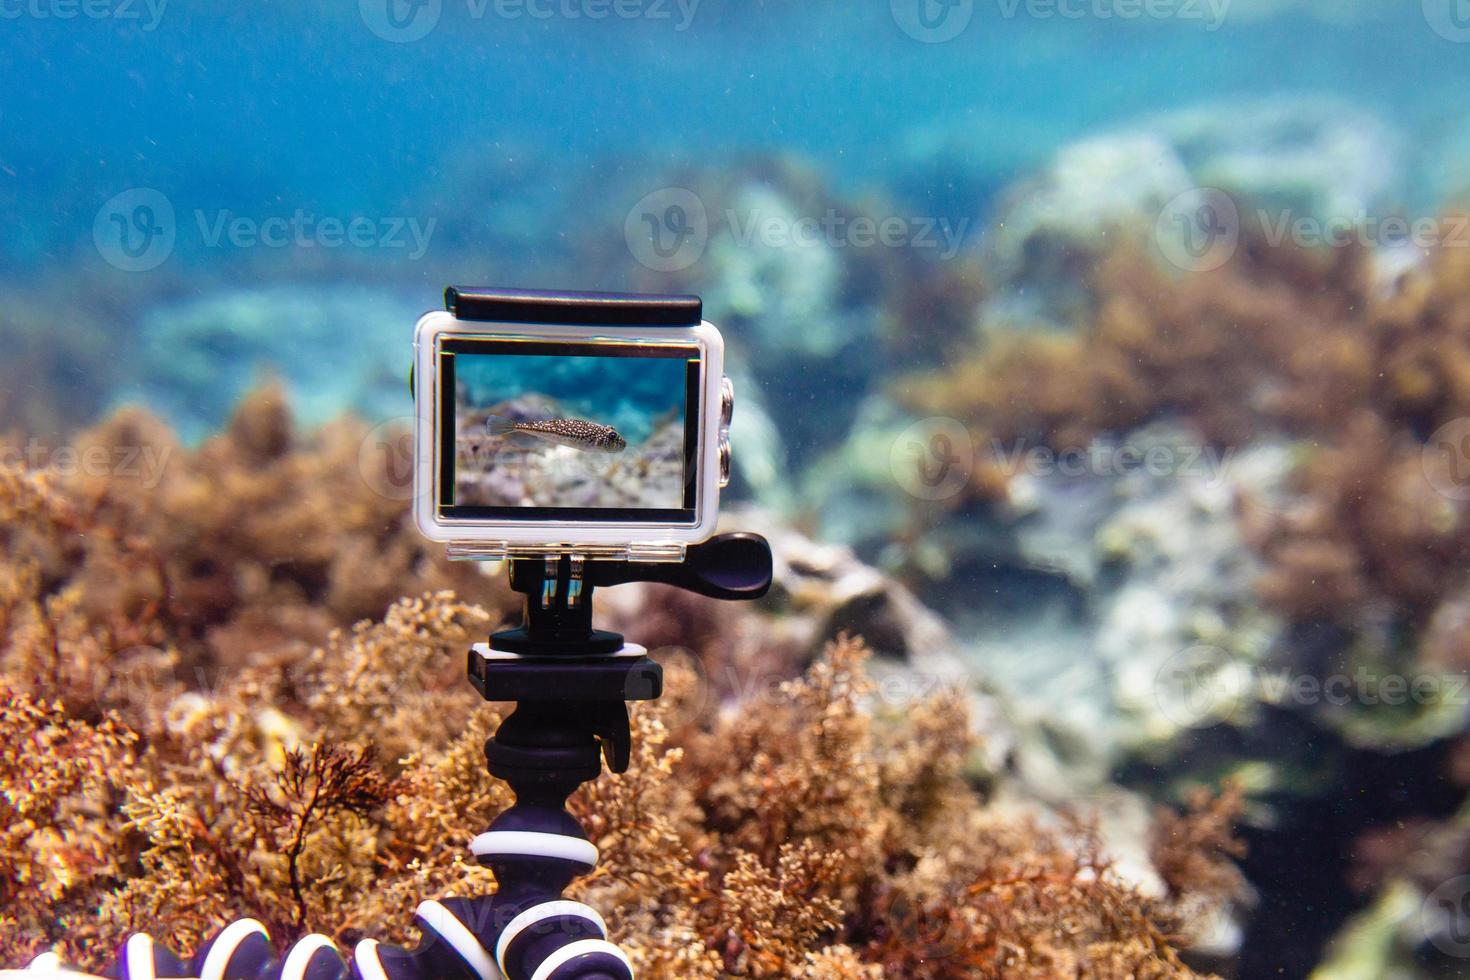 Using action-camera in waterproof box to make photos and video underwater